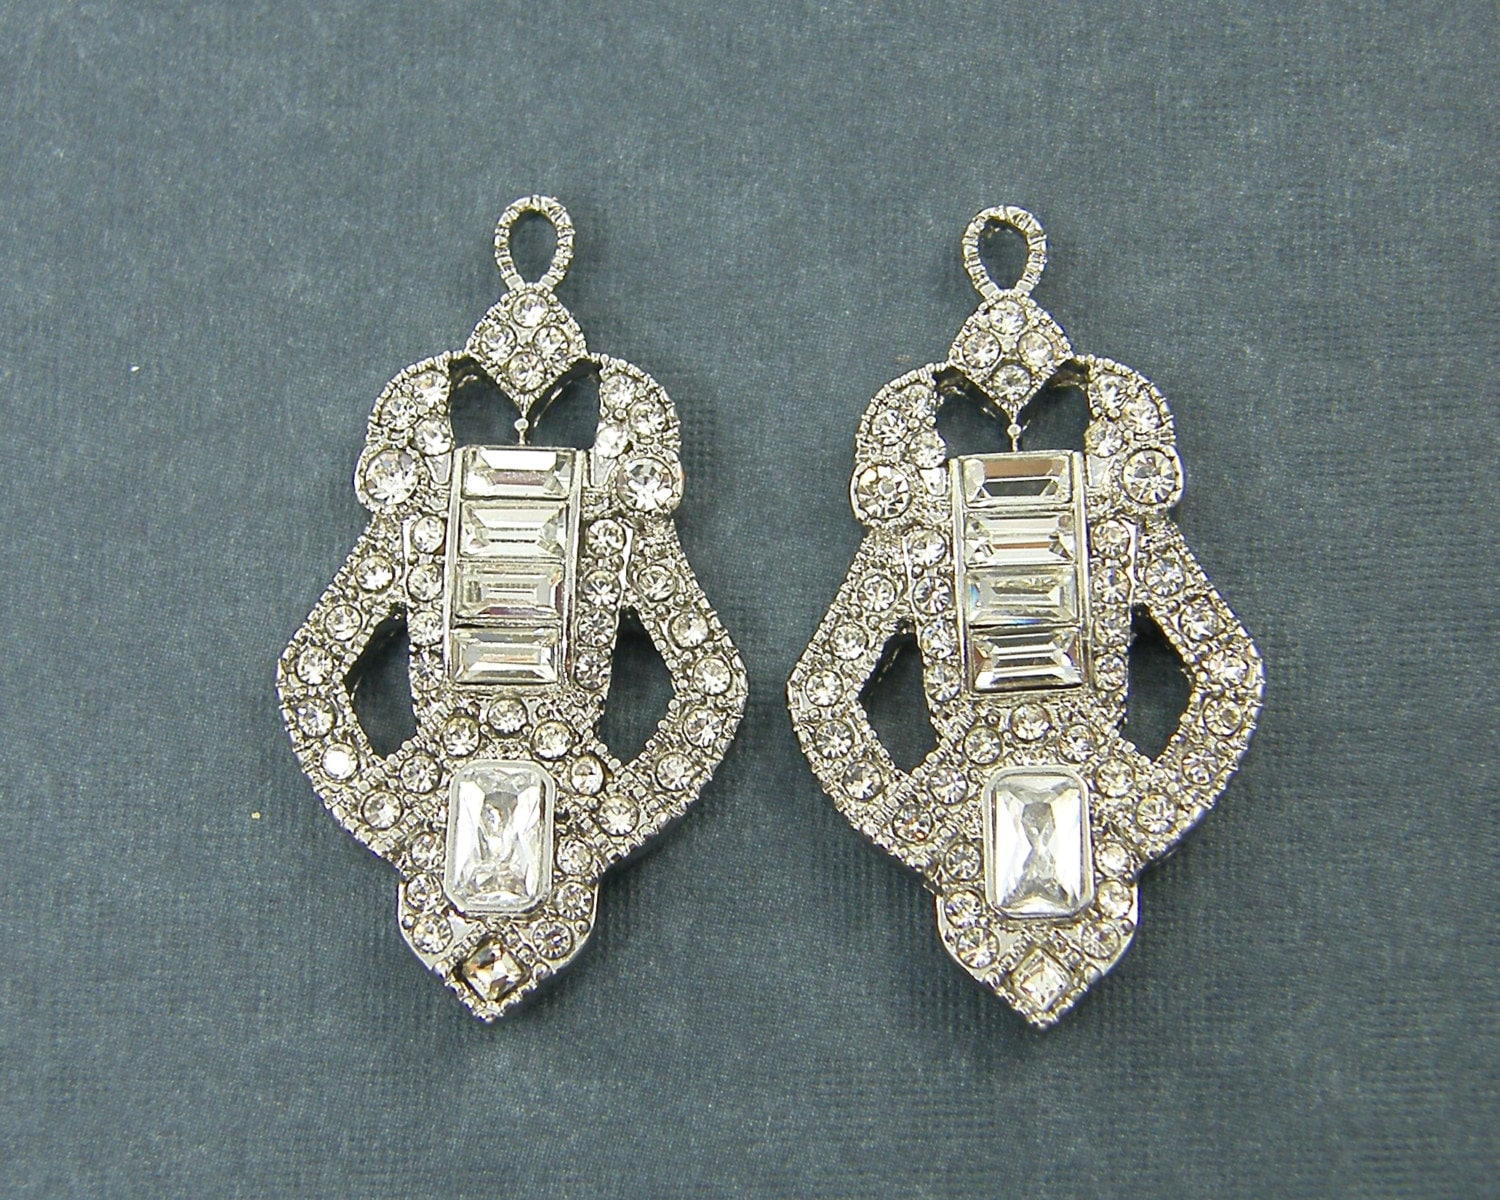 deco with p design earrings llc consignment art